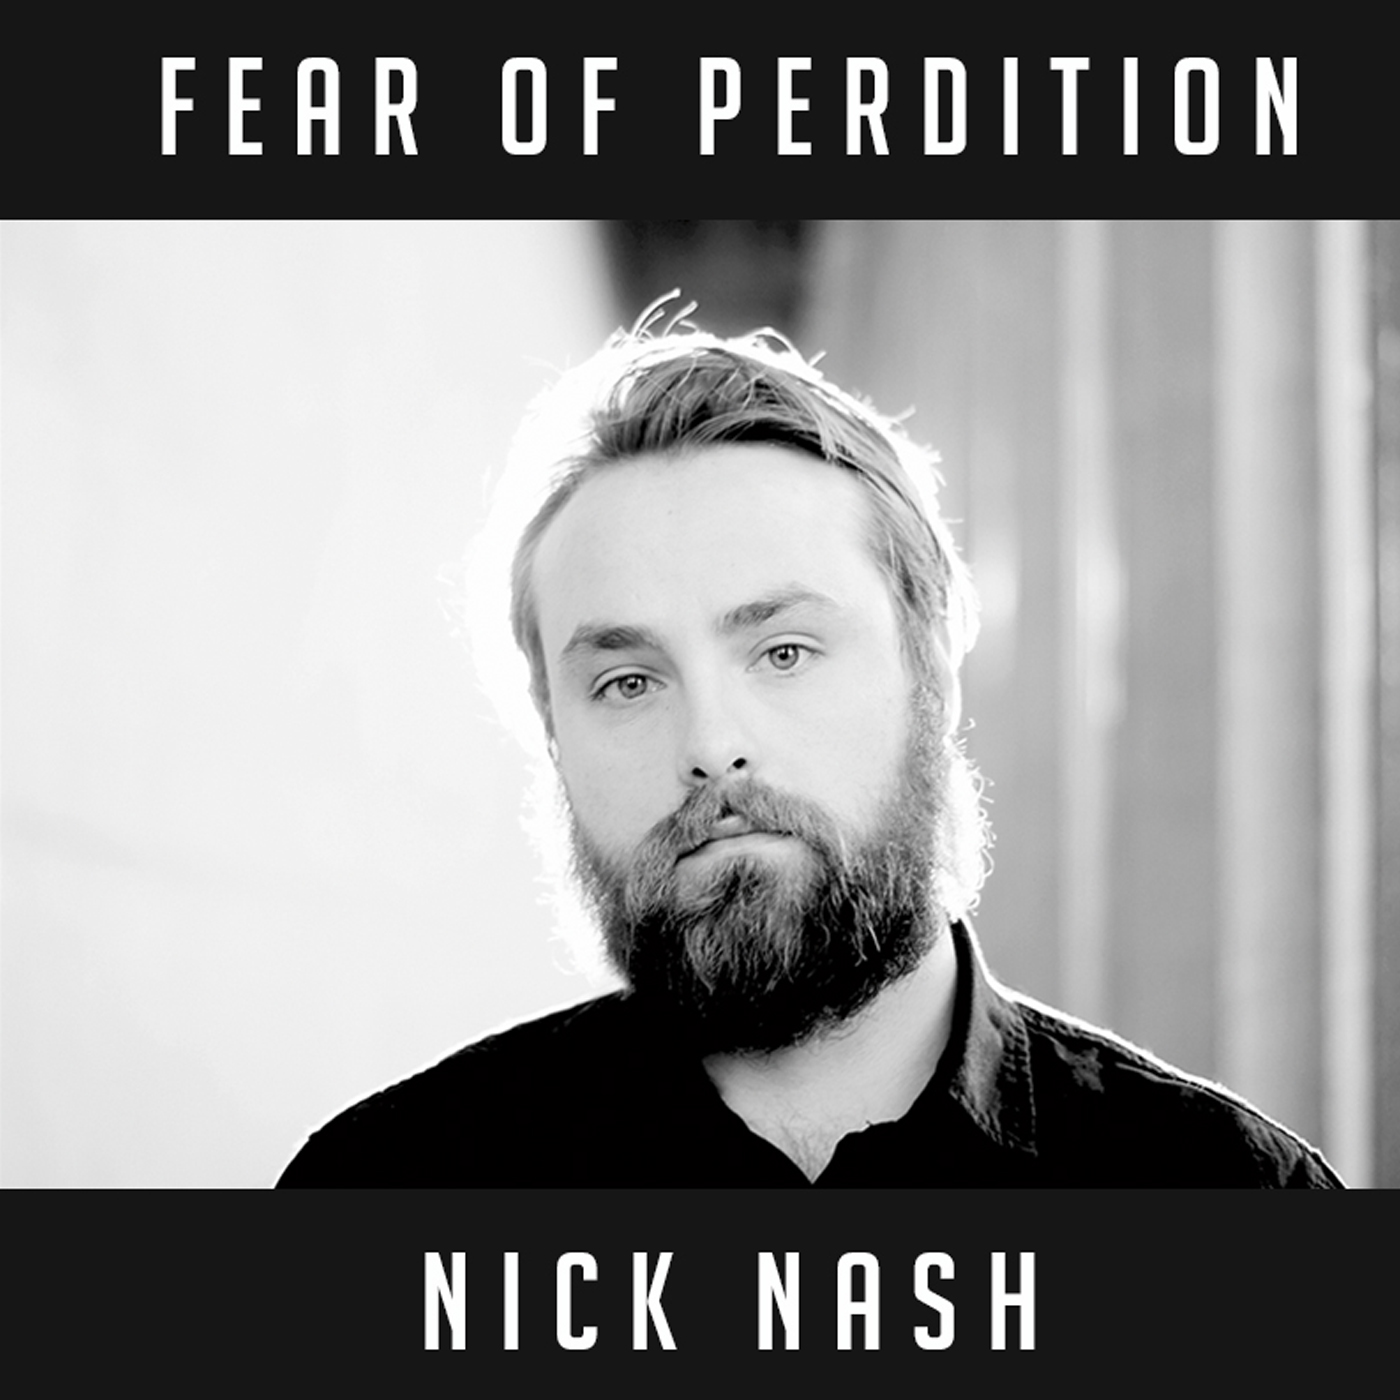 nick nash fear of perdition